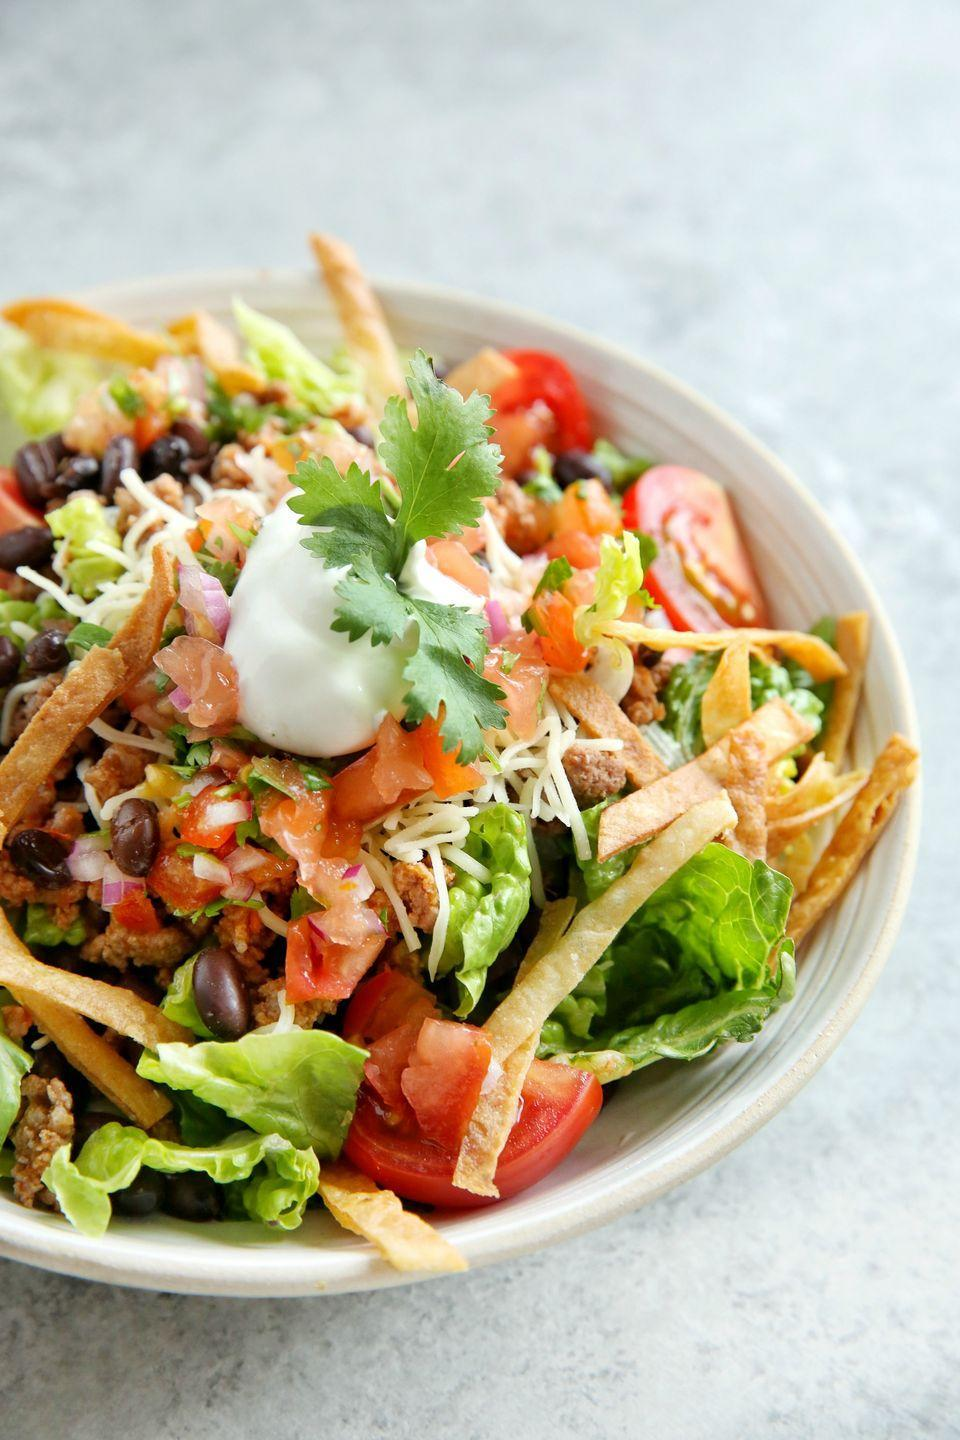 """<p>It's hard to beat a really well-made taco salad.</p><p>Get the recipe from <a href=""""https://www.delish.com/cooking/recipe-ideas/recipes/a48351/beef-taco-salad-recipe/"""" rel=""""nofollow noopener"""" target=""""_blank"""" data-ylk=""""slk:Delish"""" class=""""link rapid-noclick-resp"""">Delish</a>. </p>"""